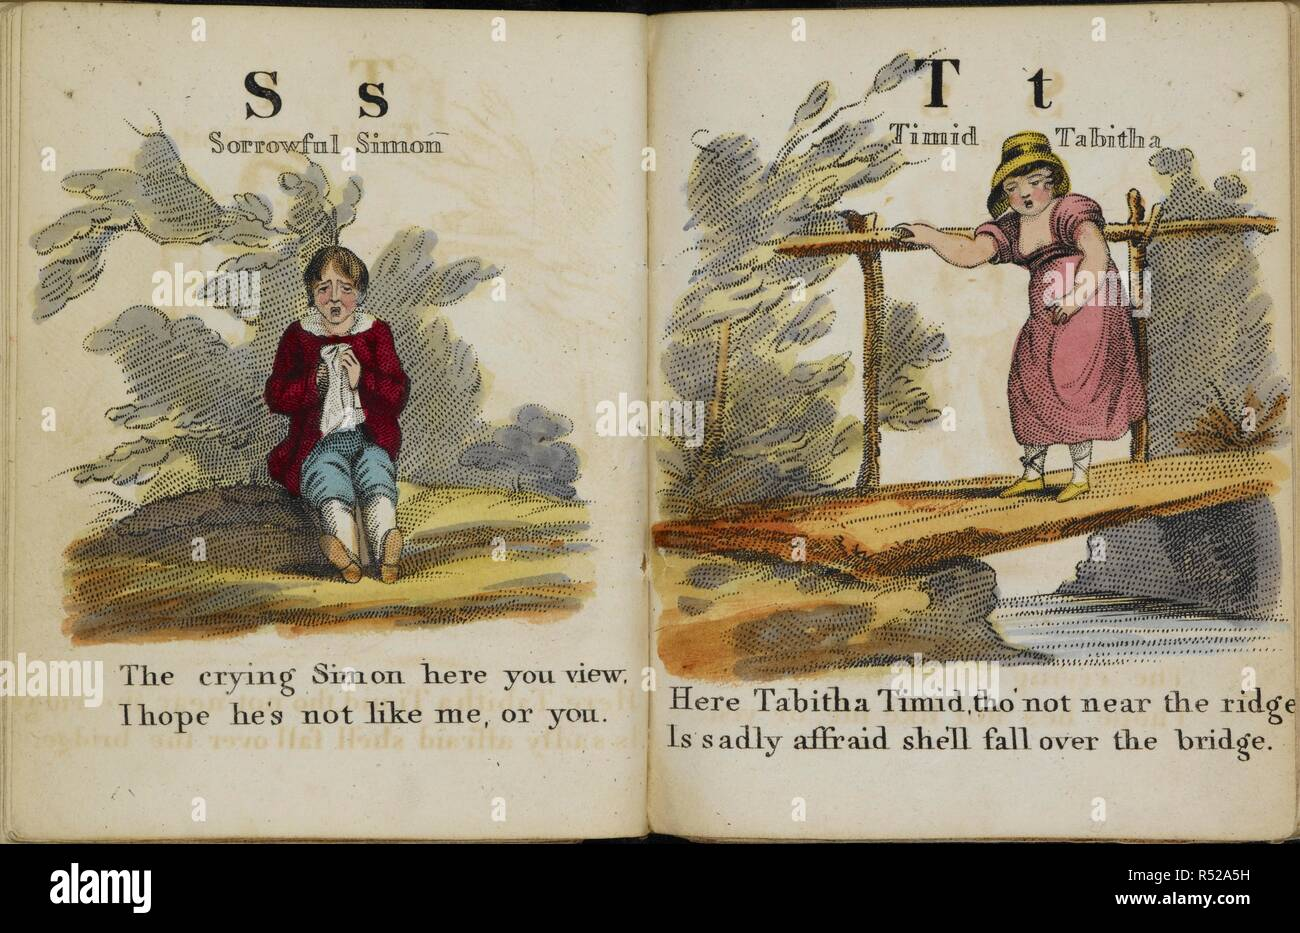 Illustrations in an alphabet book. 'S' represented by 'Sorrowful Simon'. 'T' represented by 'Timid Tabitha'. The History of Mother Twaddle, and the marvellous atchievements of her son Jack. By. B. A. T. London : J. Harris, 1807. Source: Ch.800/111.(1). - Stock Image